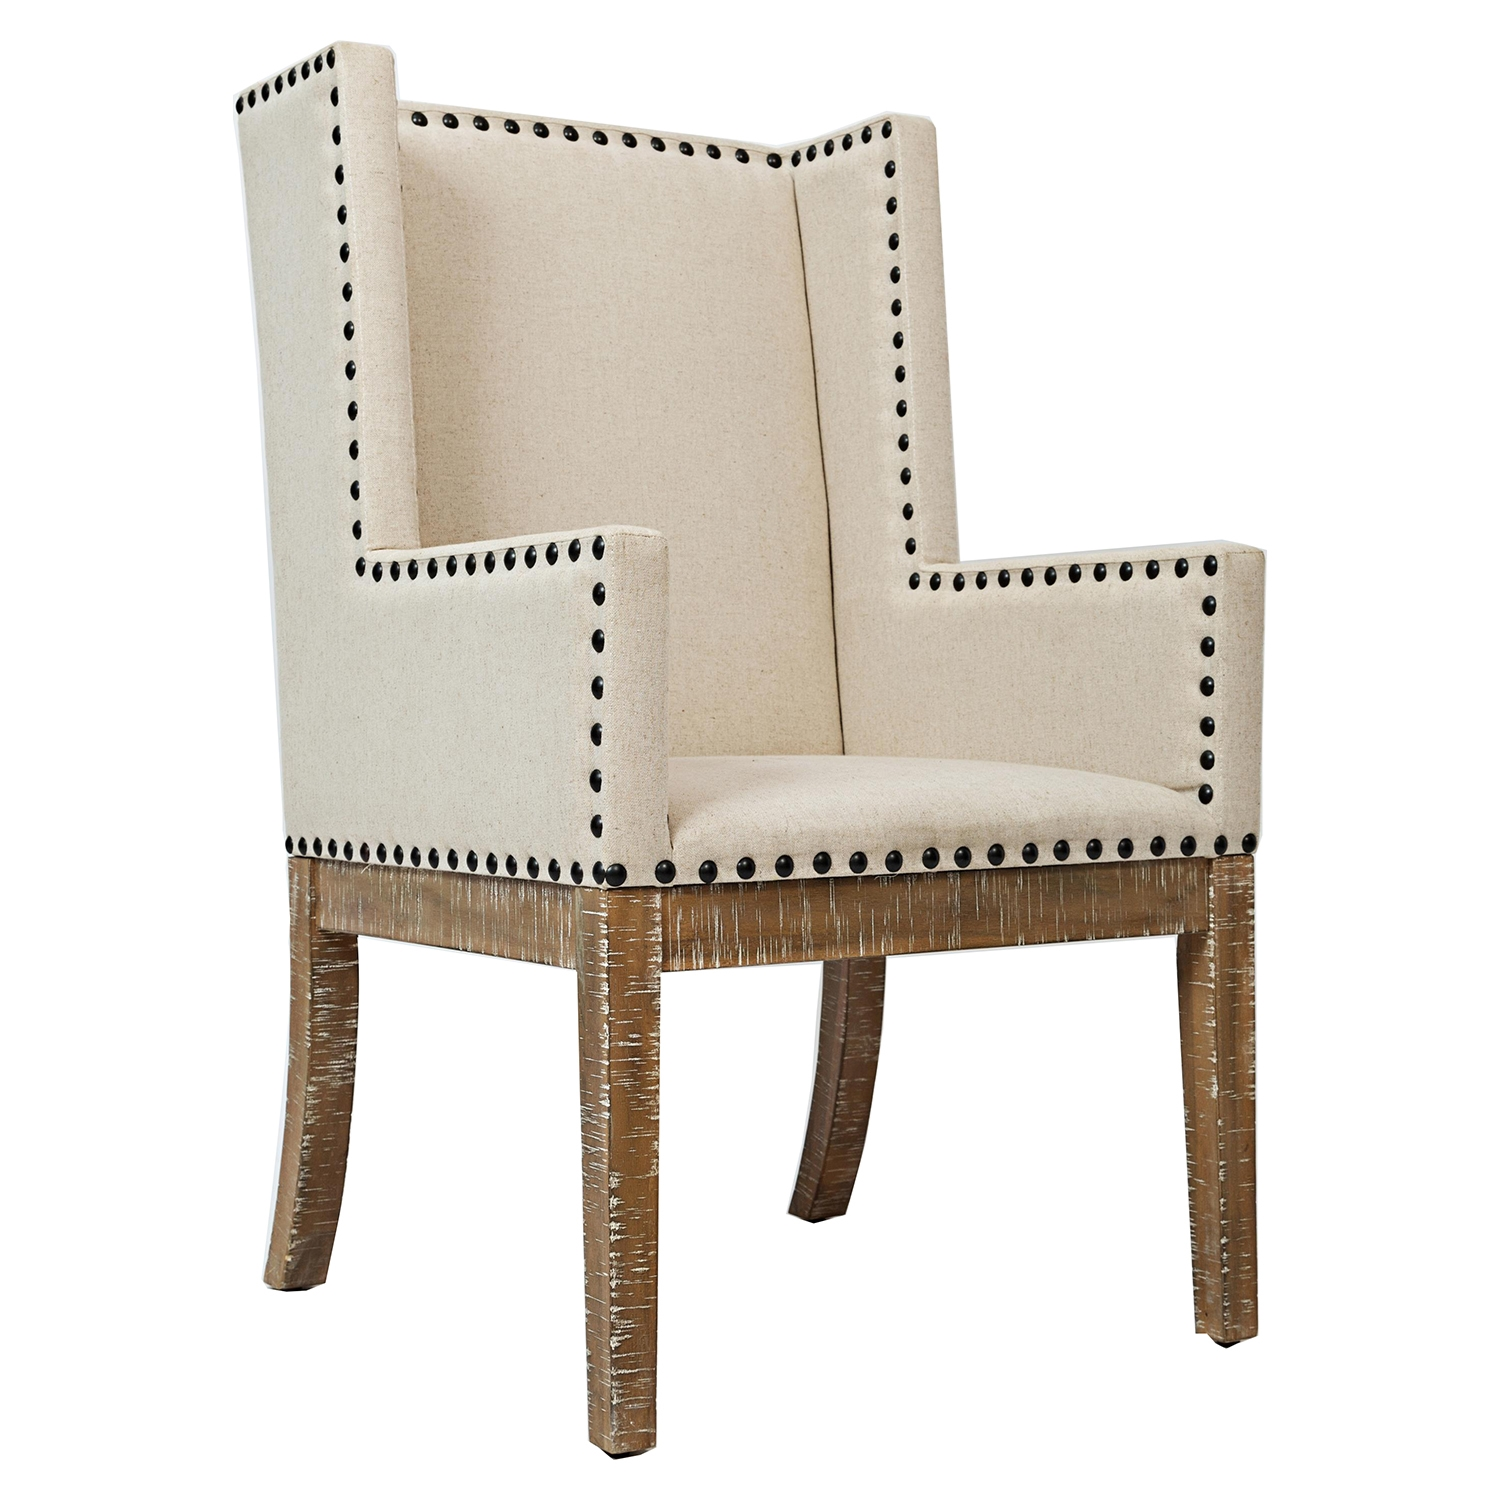 Pacific Heights Upholstered Chair - Bisque - JOFR-1590-198KD